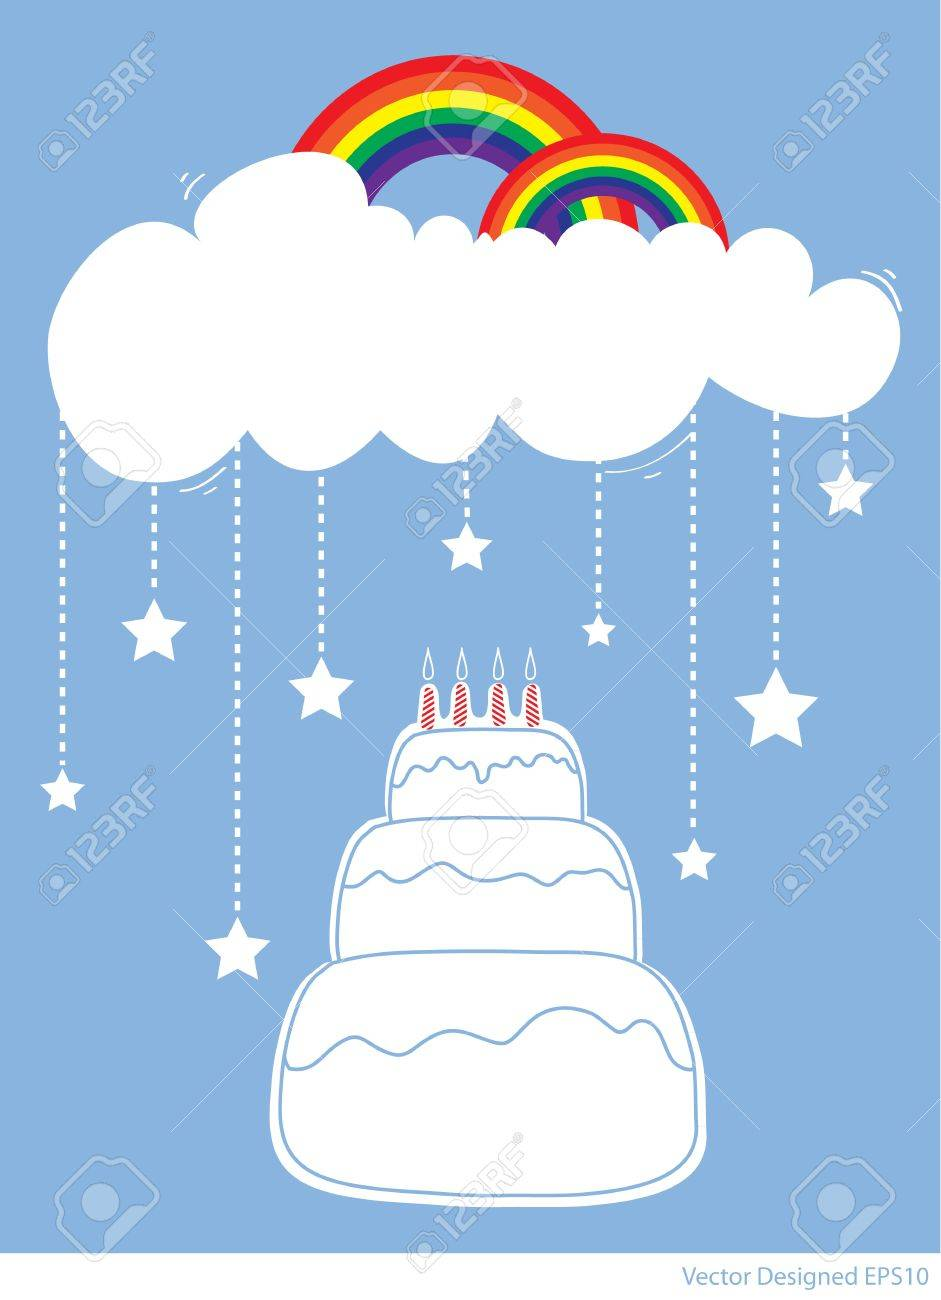 Birthday Cake with rainbow and star falling from white clouds Stock Vector - 13229040